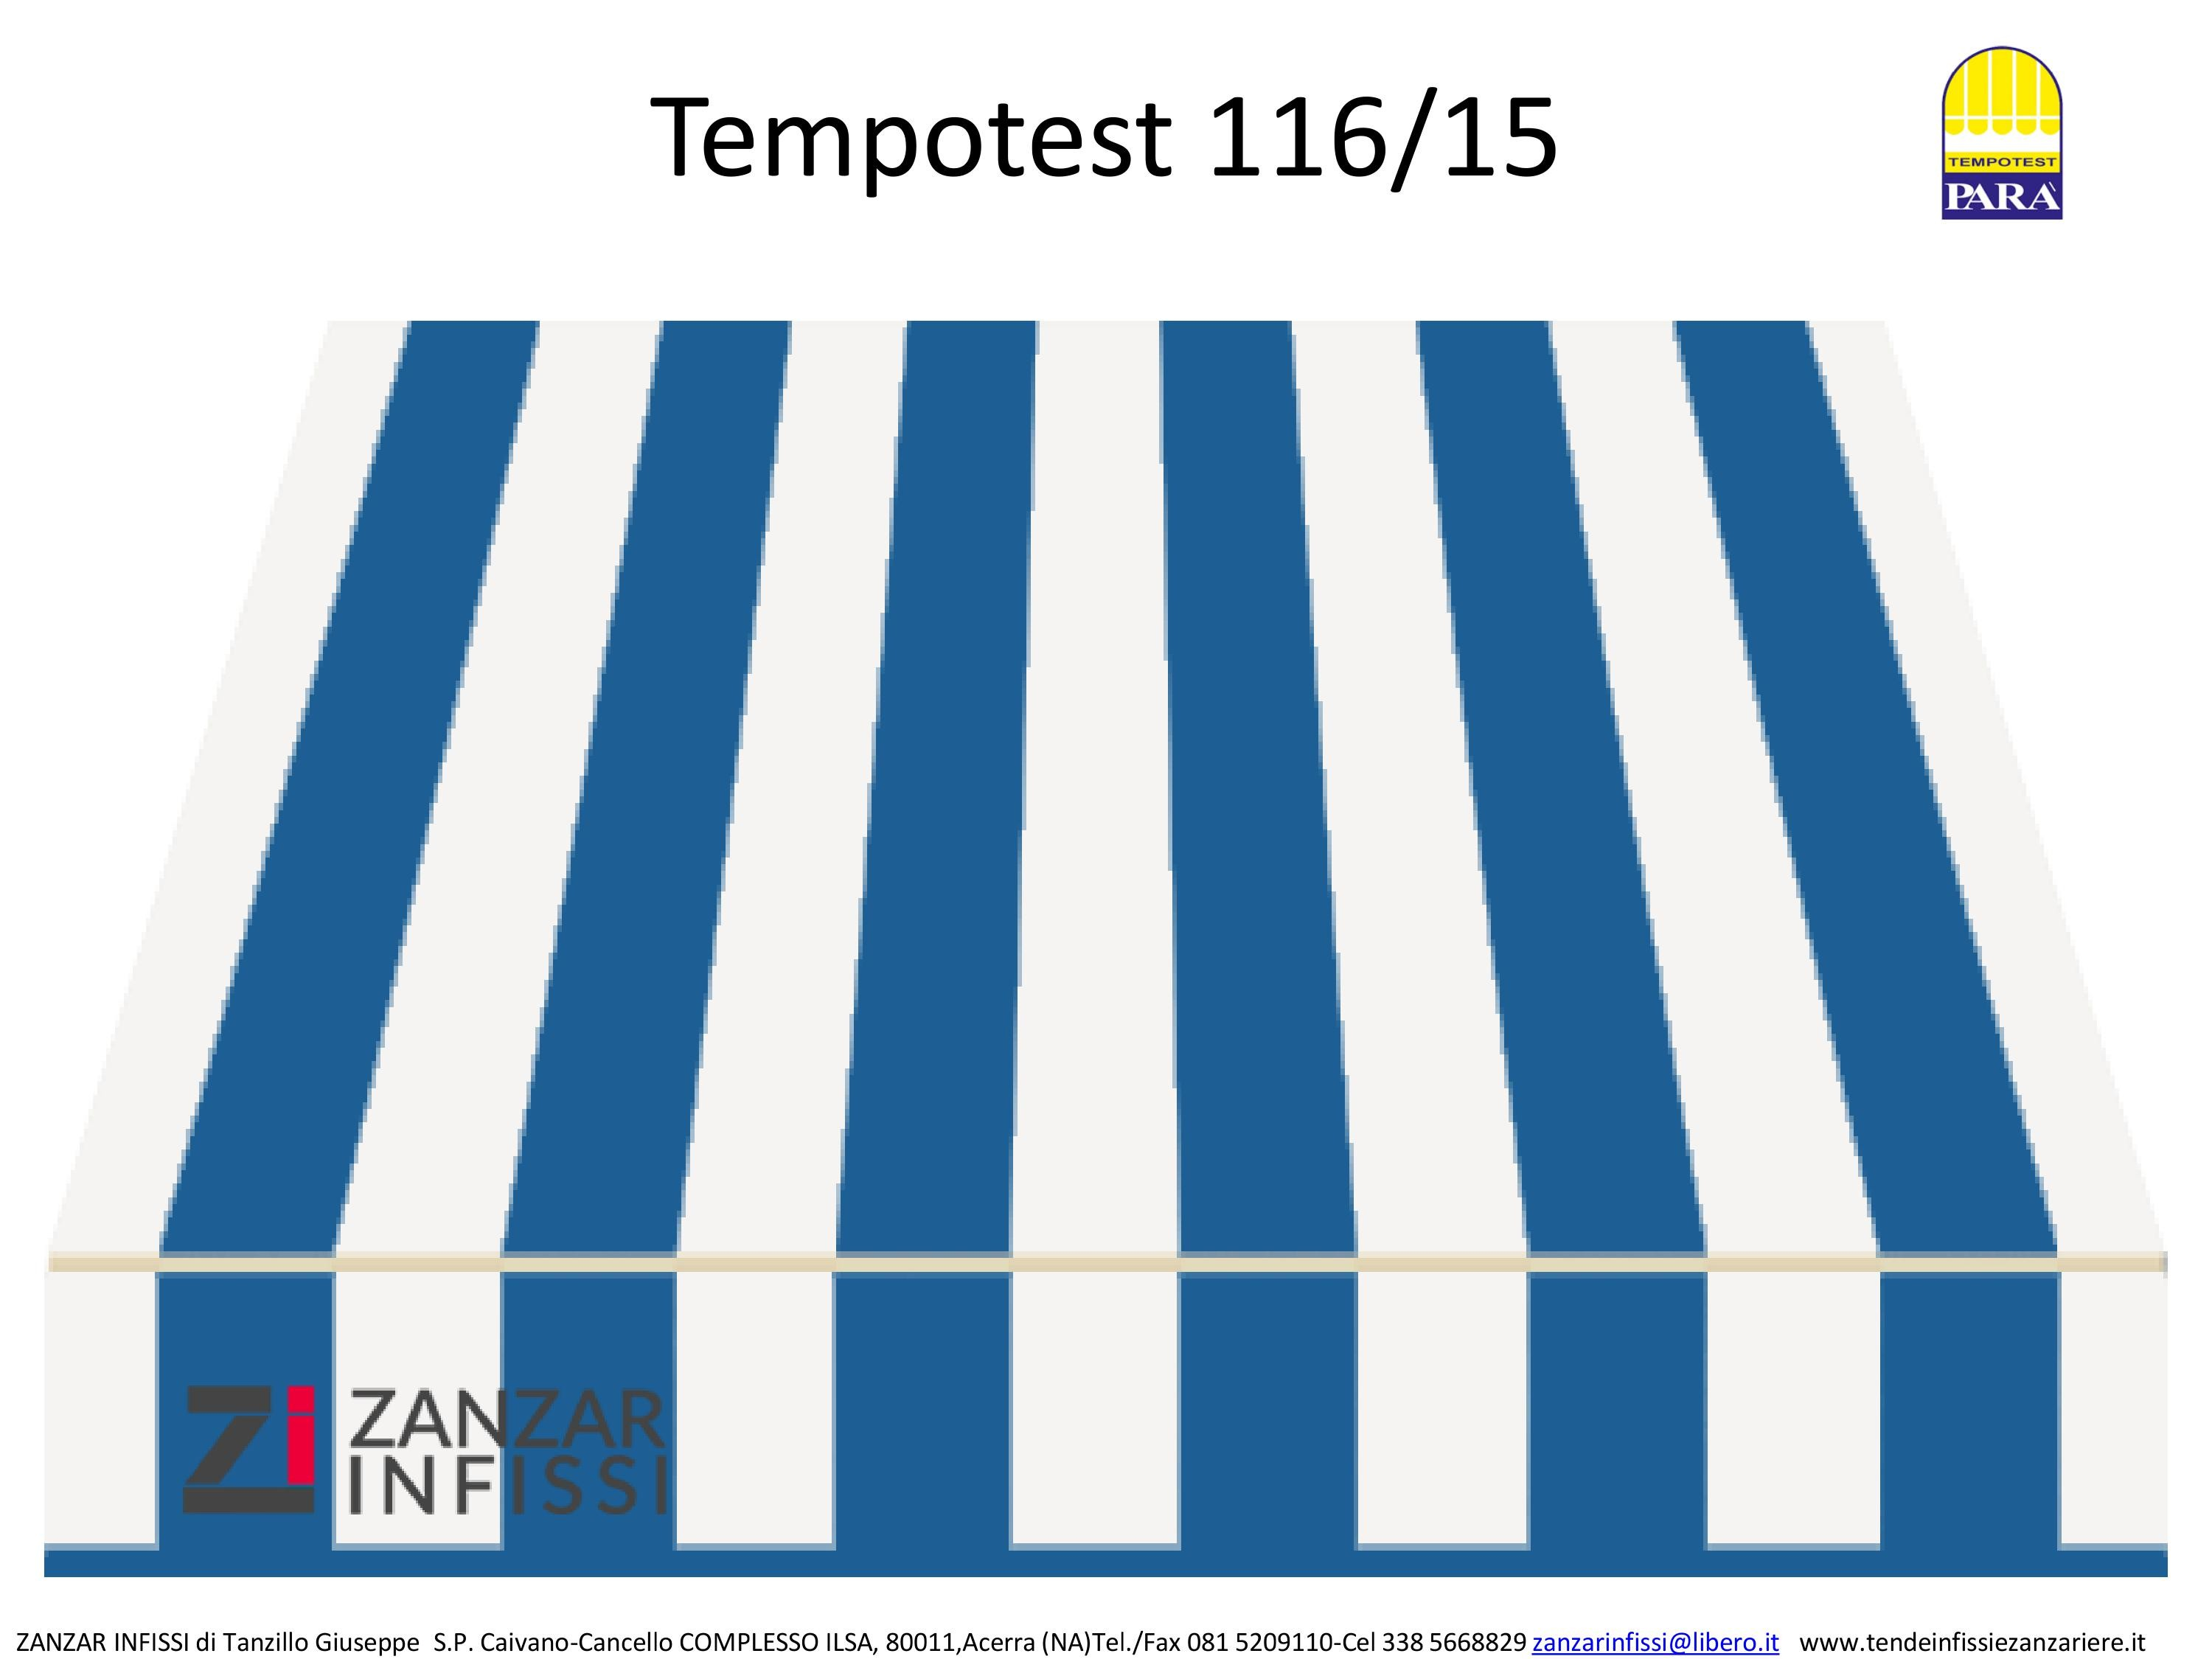 Tempotest 116/15